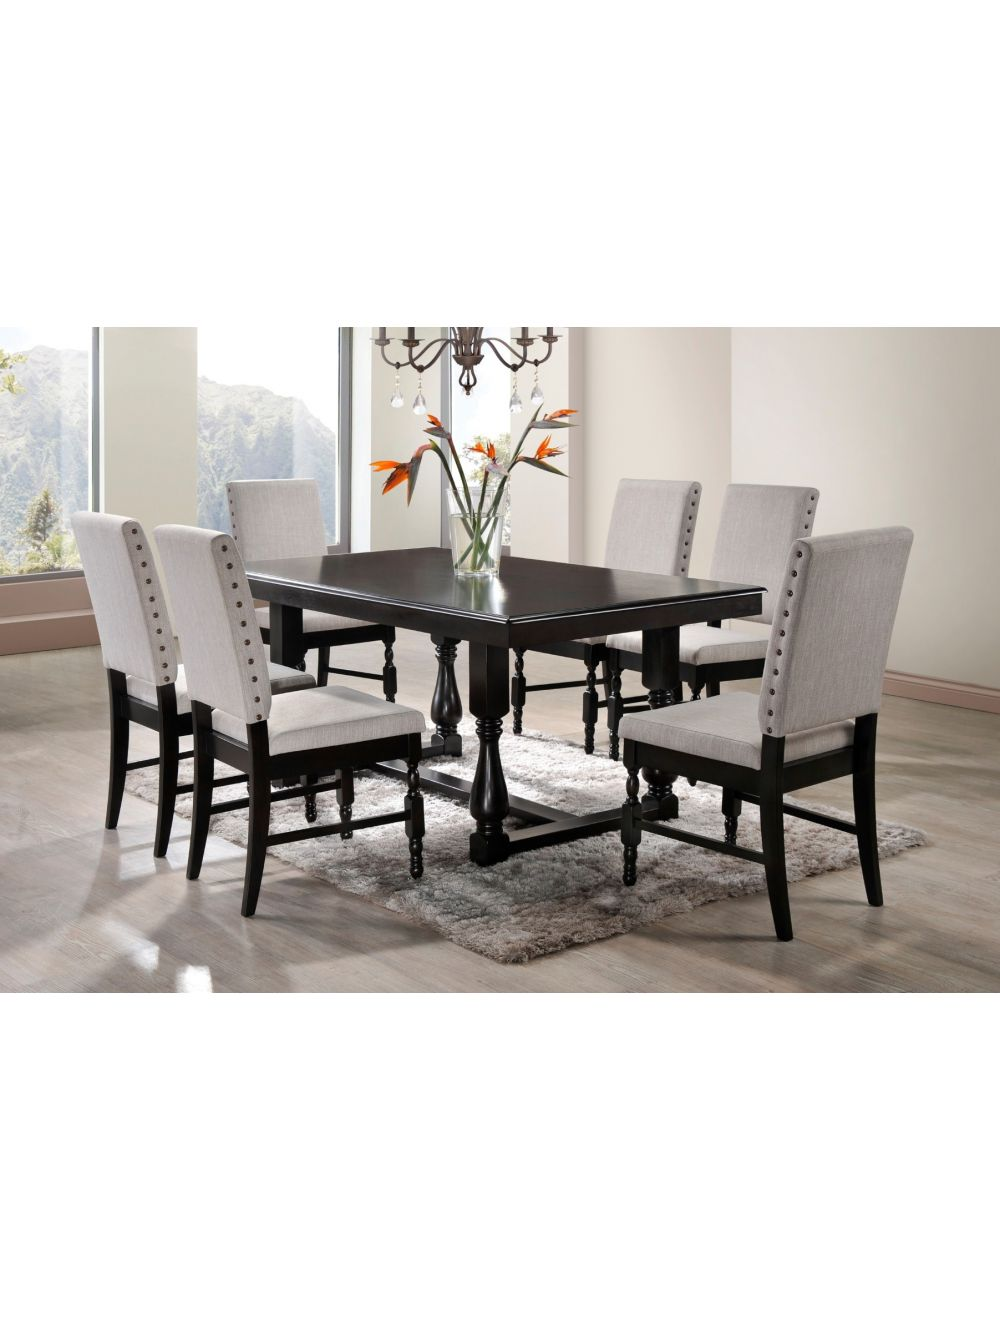 RADIAN 9 SEATER DINING TABLE SET  EMERSON   Radian Online Zambia